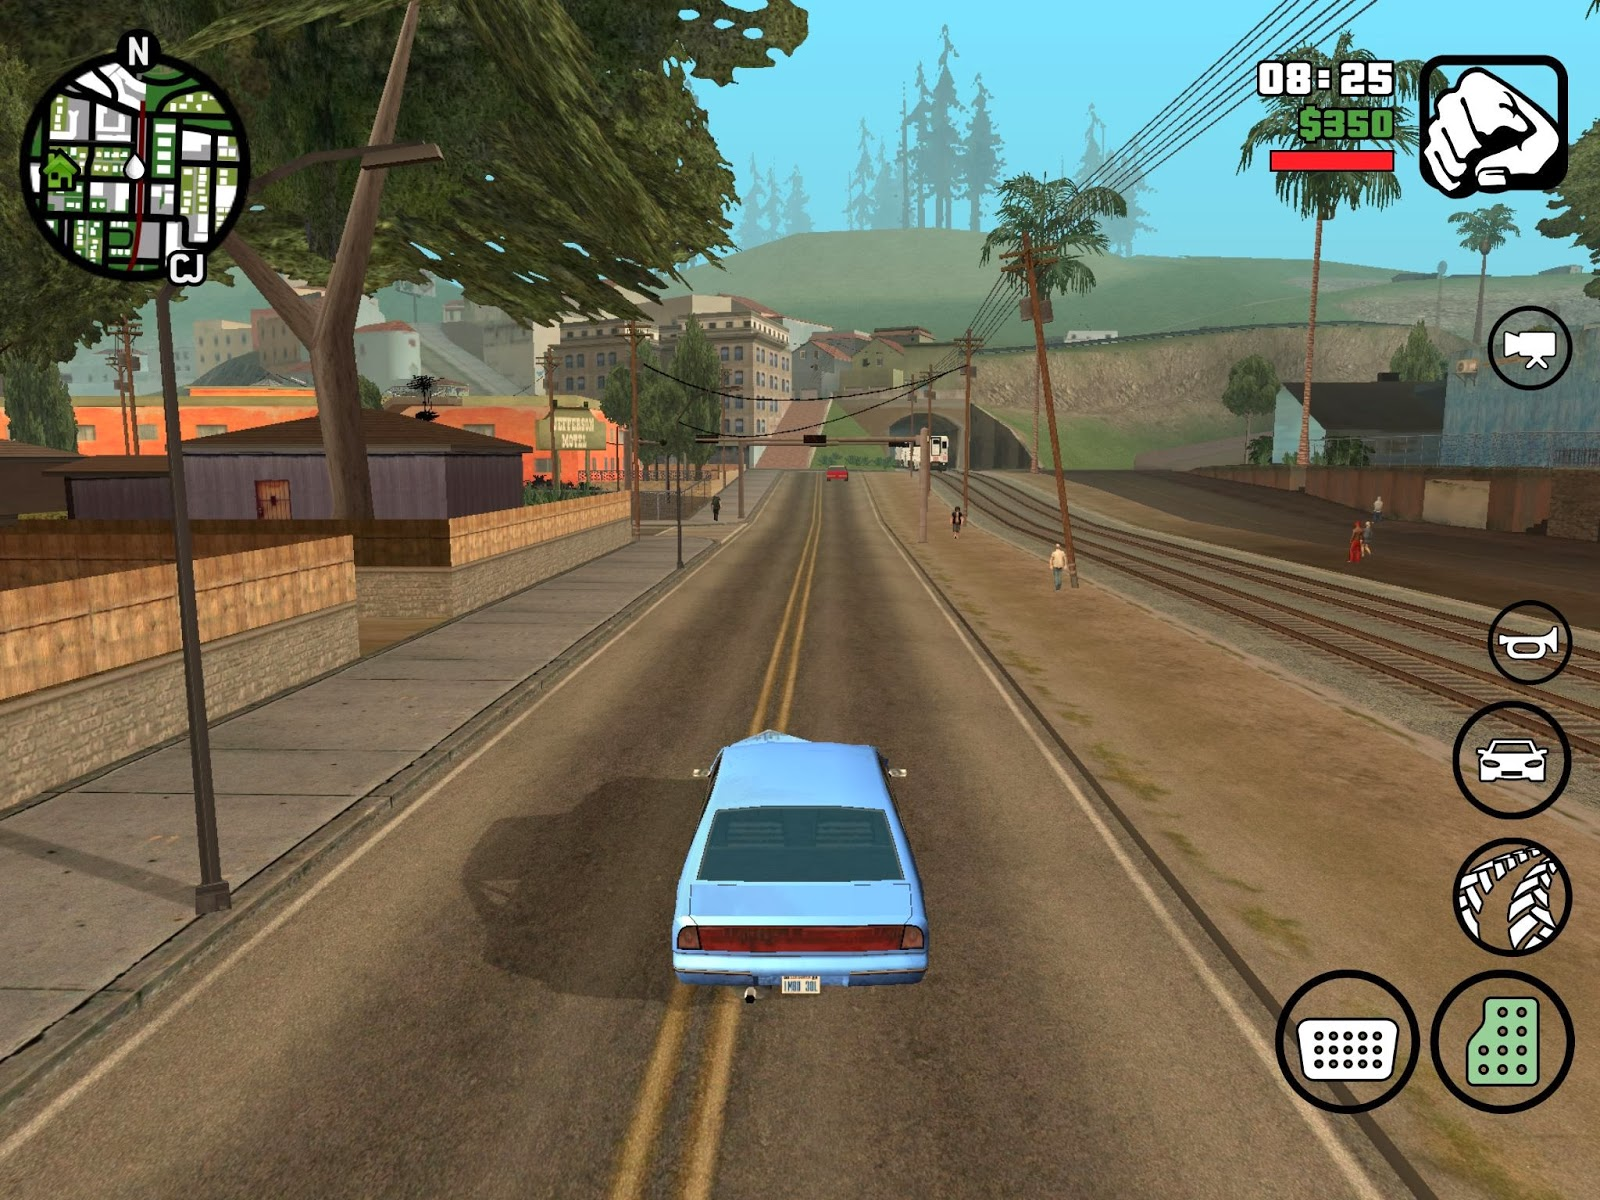 GTA SAN ANDREAS ANDROID CHEAT MOD APK FREE DOWNLOAD ...